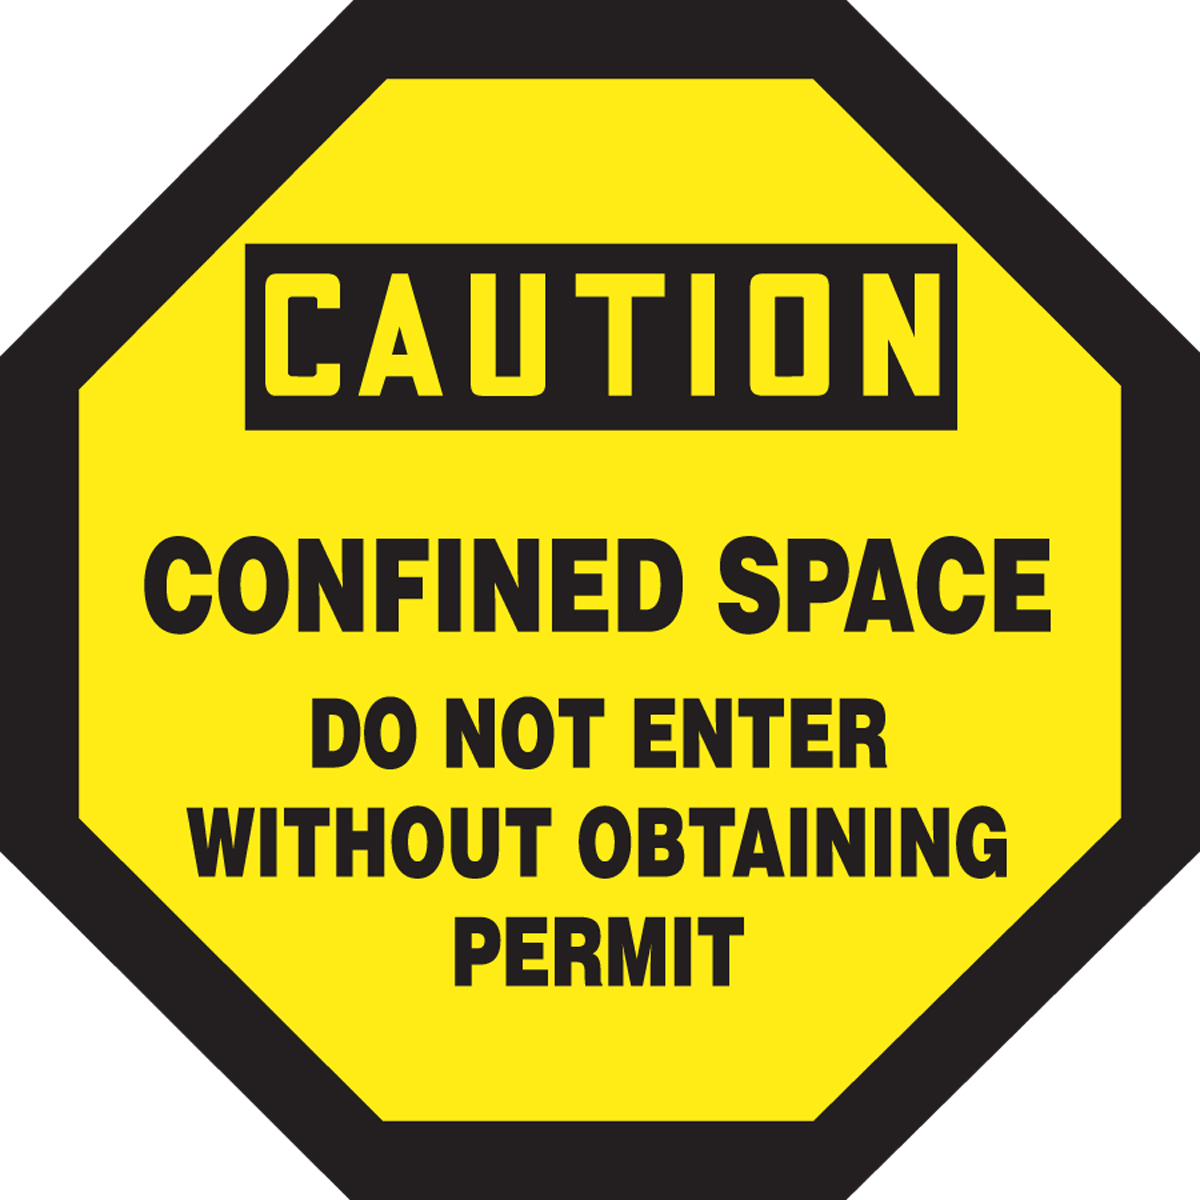 CONFINED SPACE DO NOT ENTER WITHOUT OBTAINING PERMIT